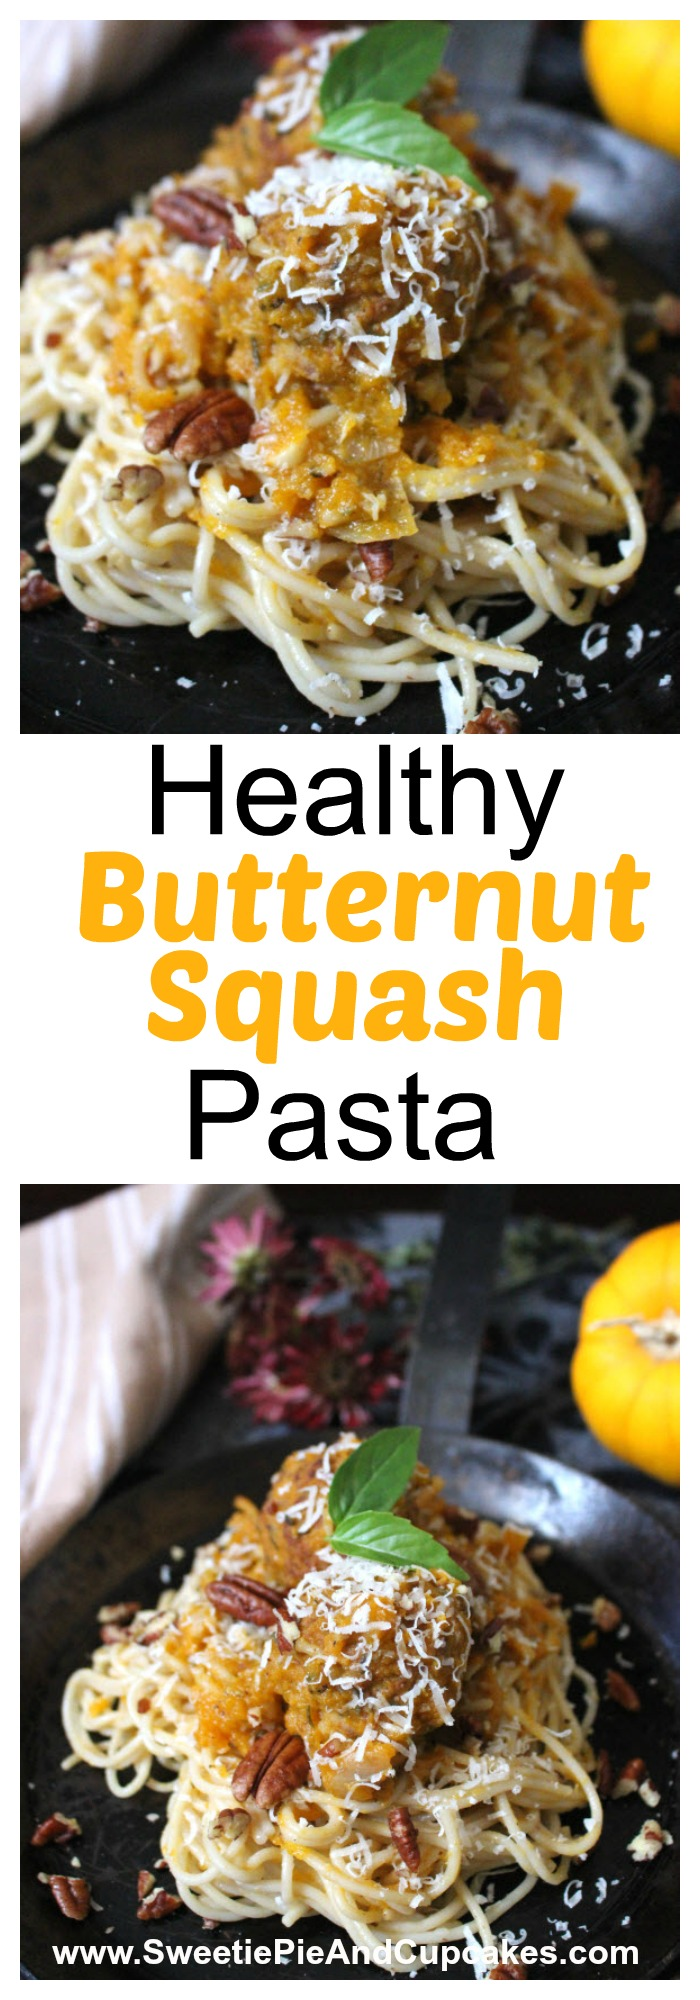 butternut squash pasta recipe is easy and healthy